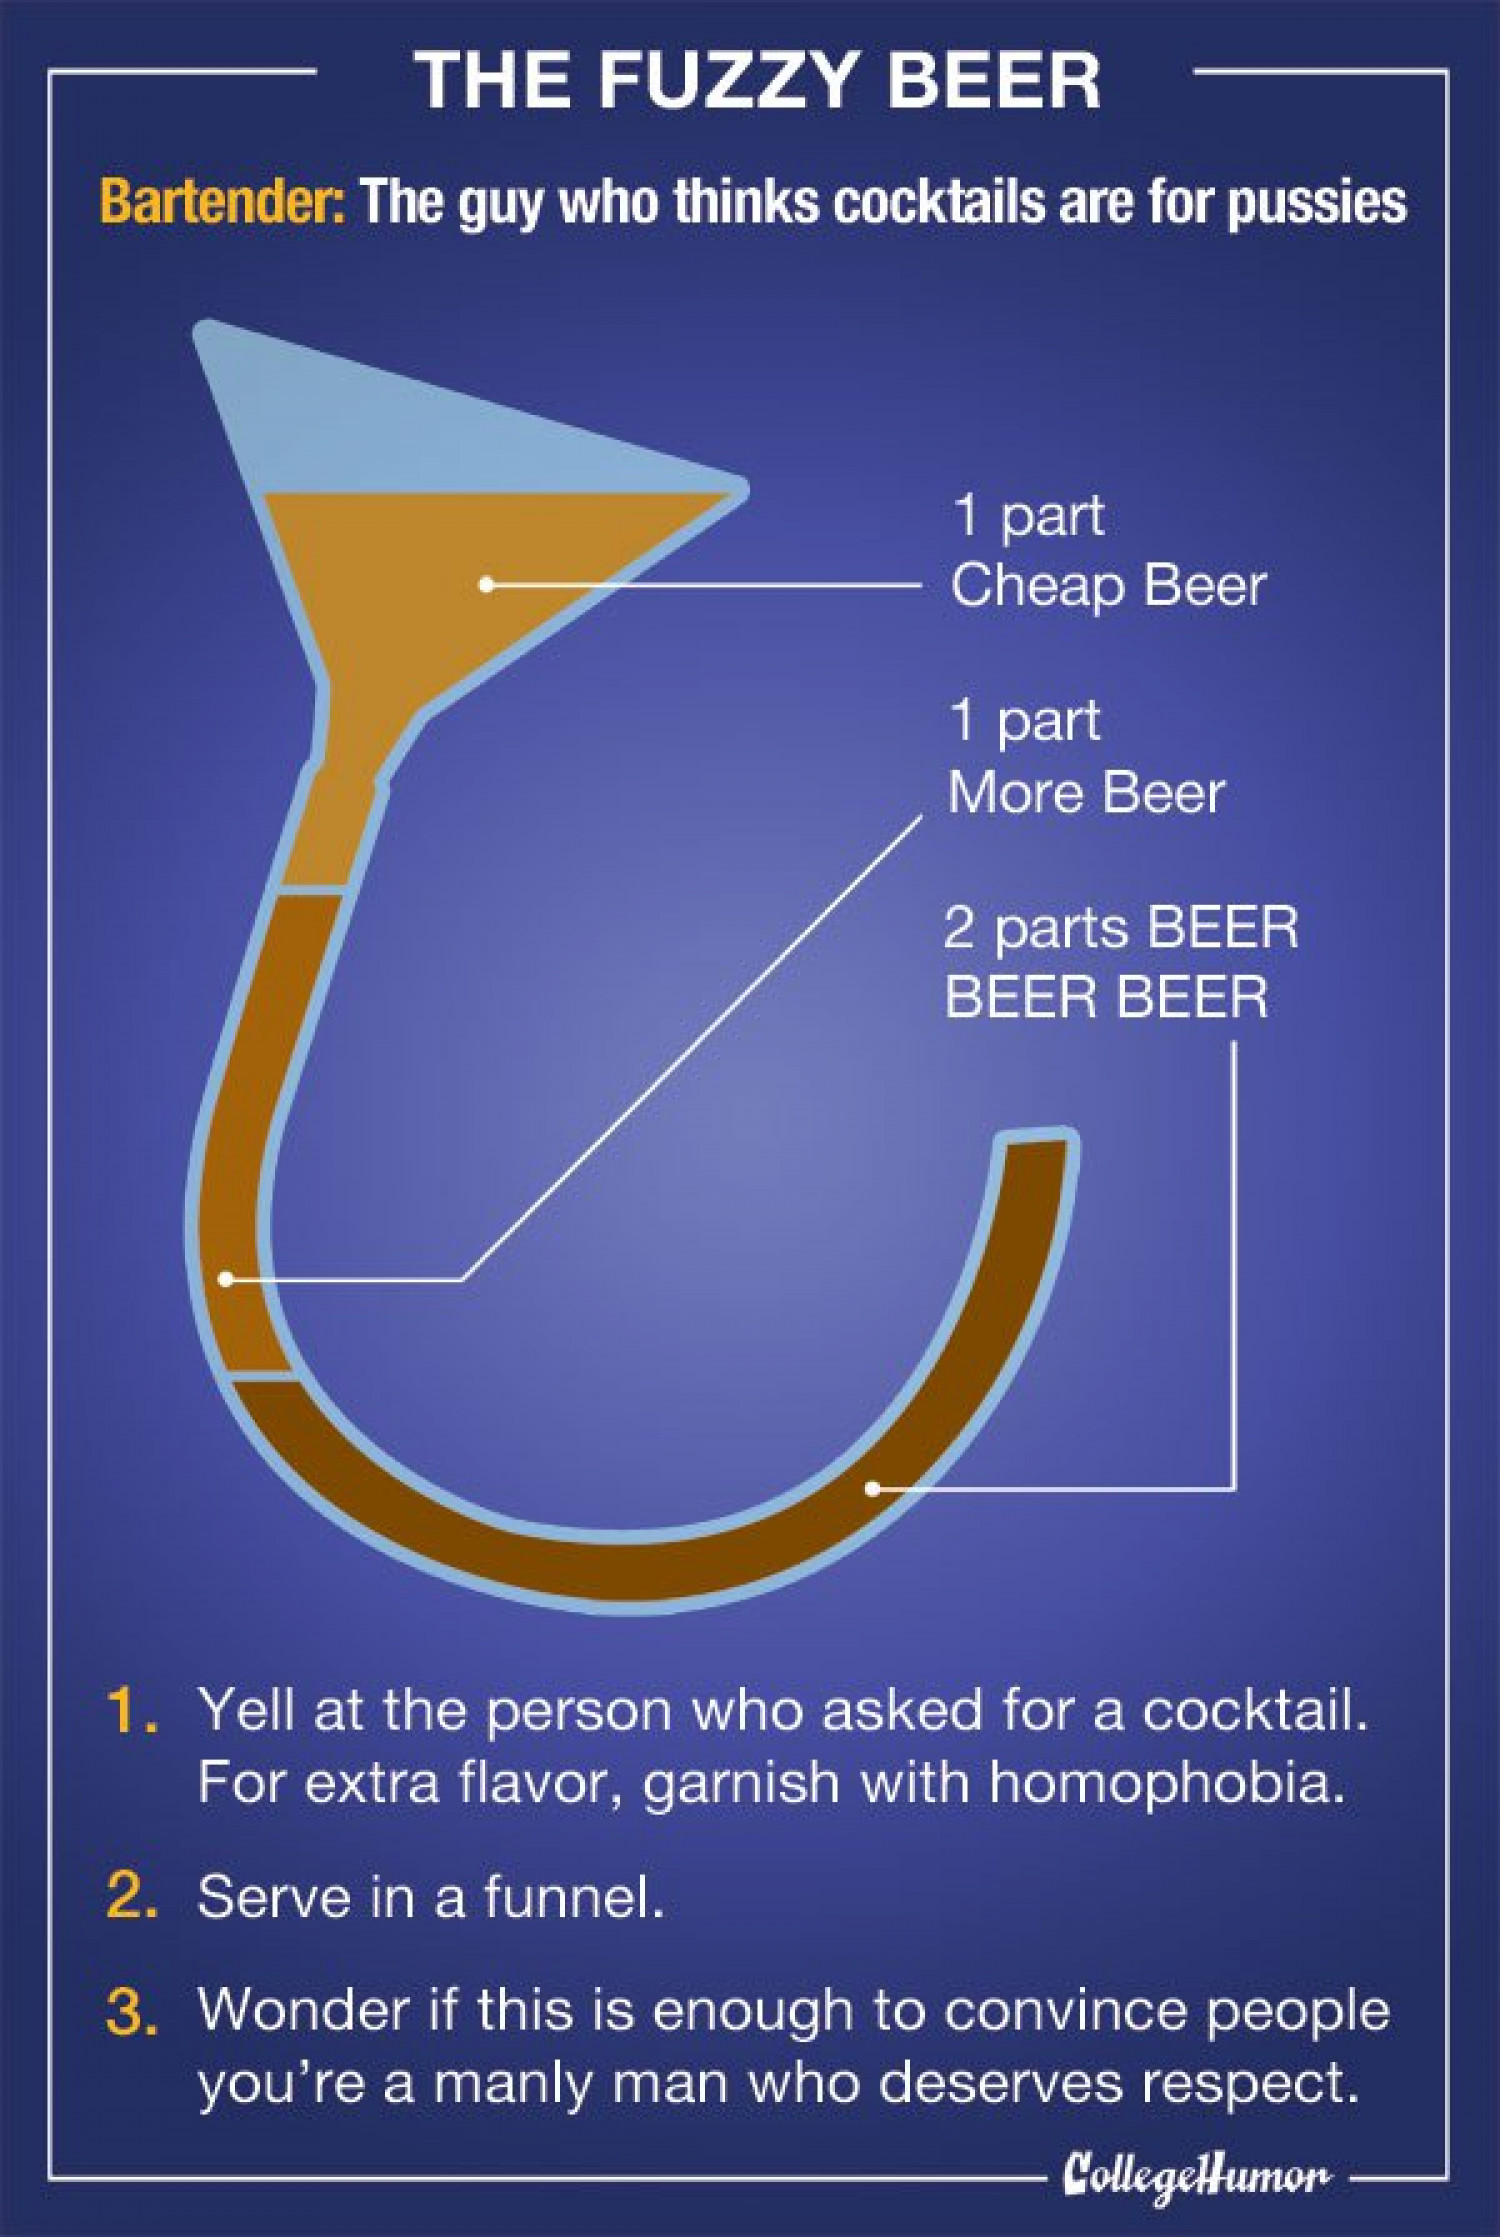 The Fuzzy Bear Cocktail Infographic